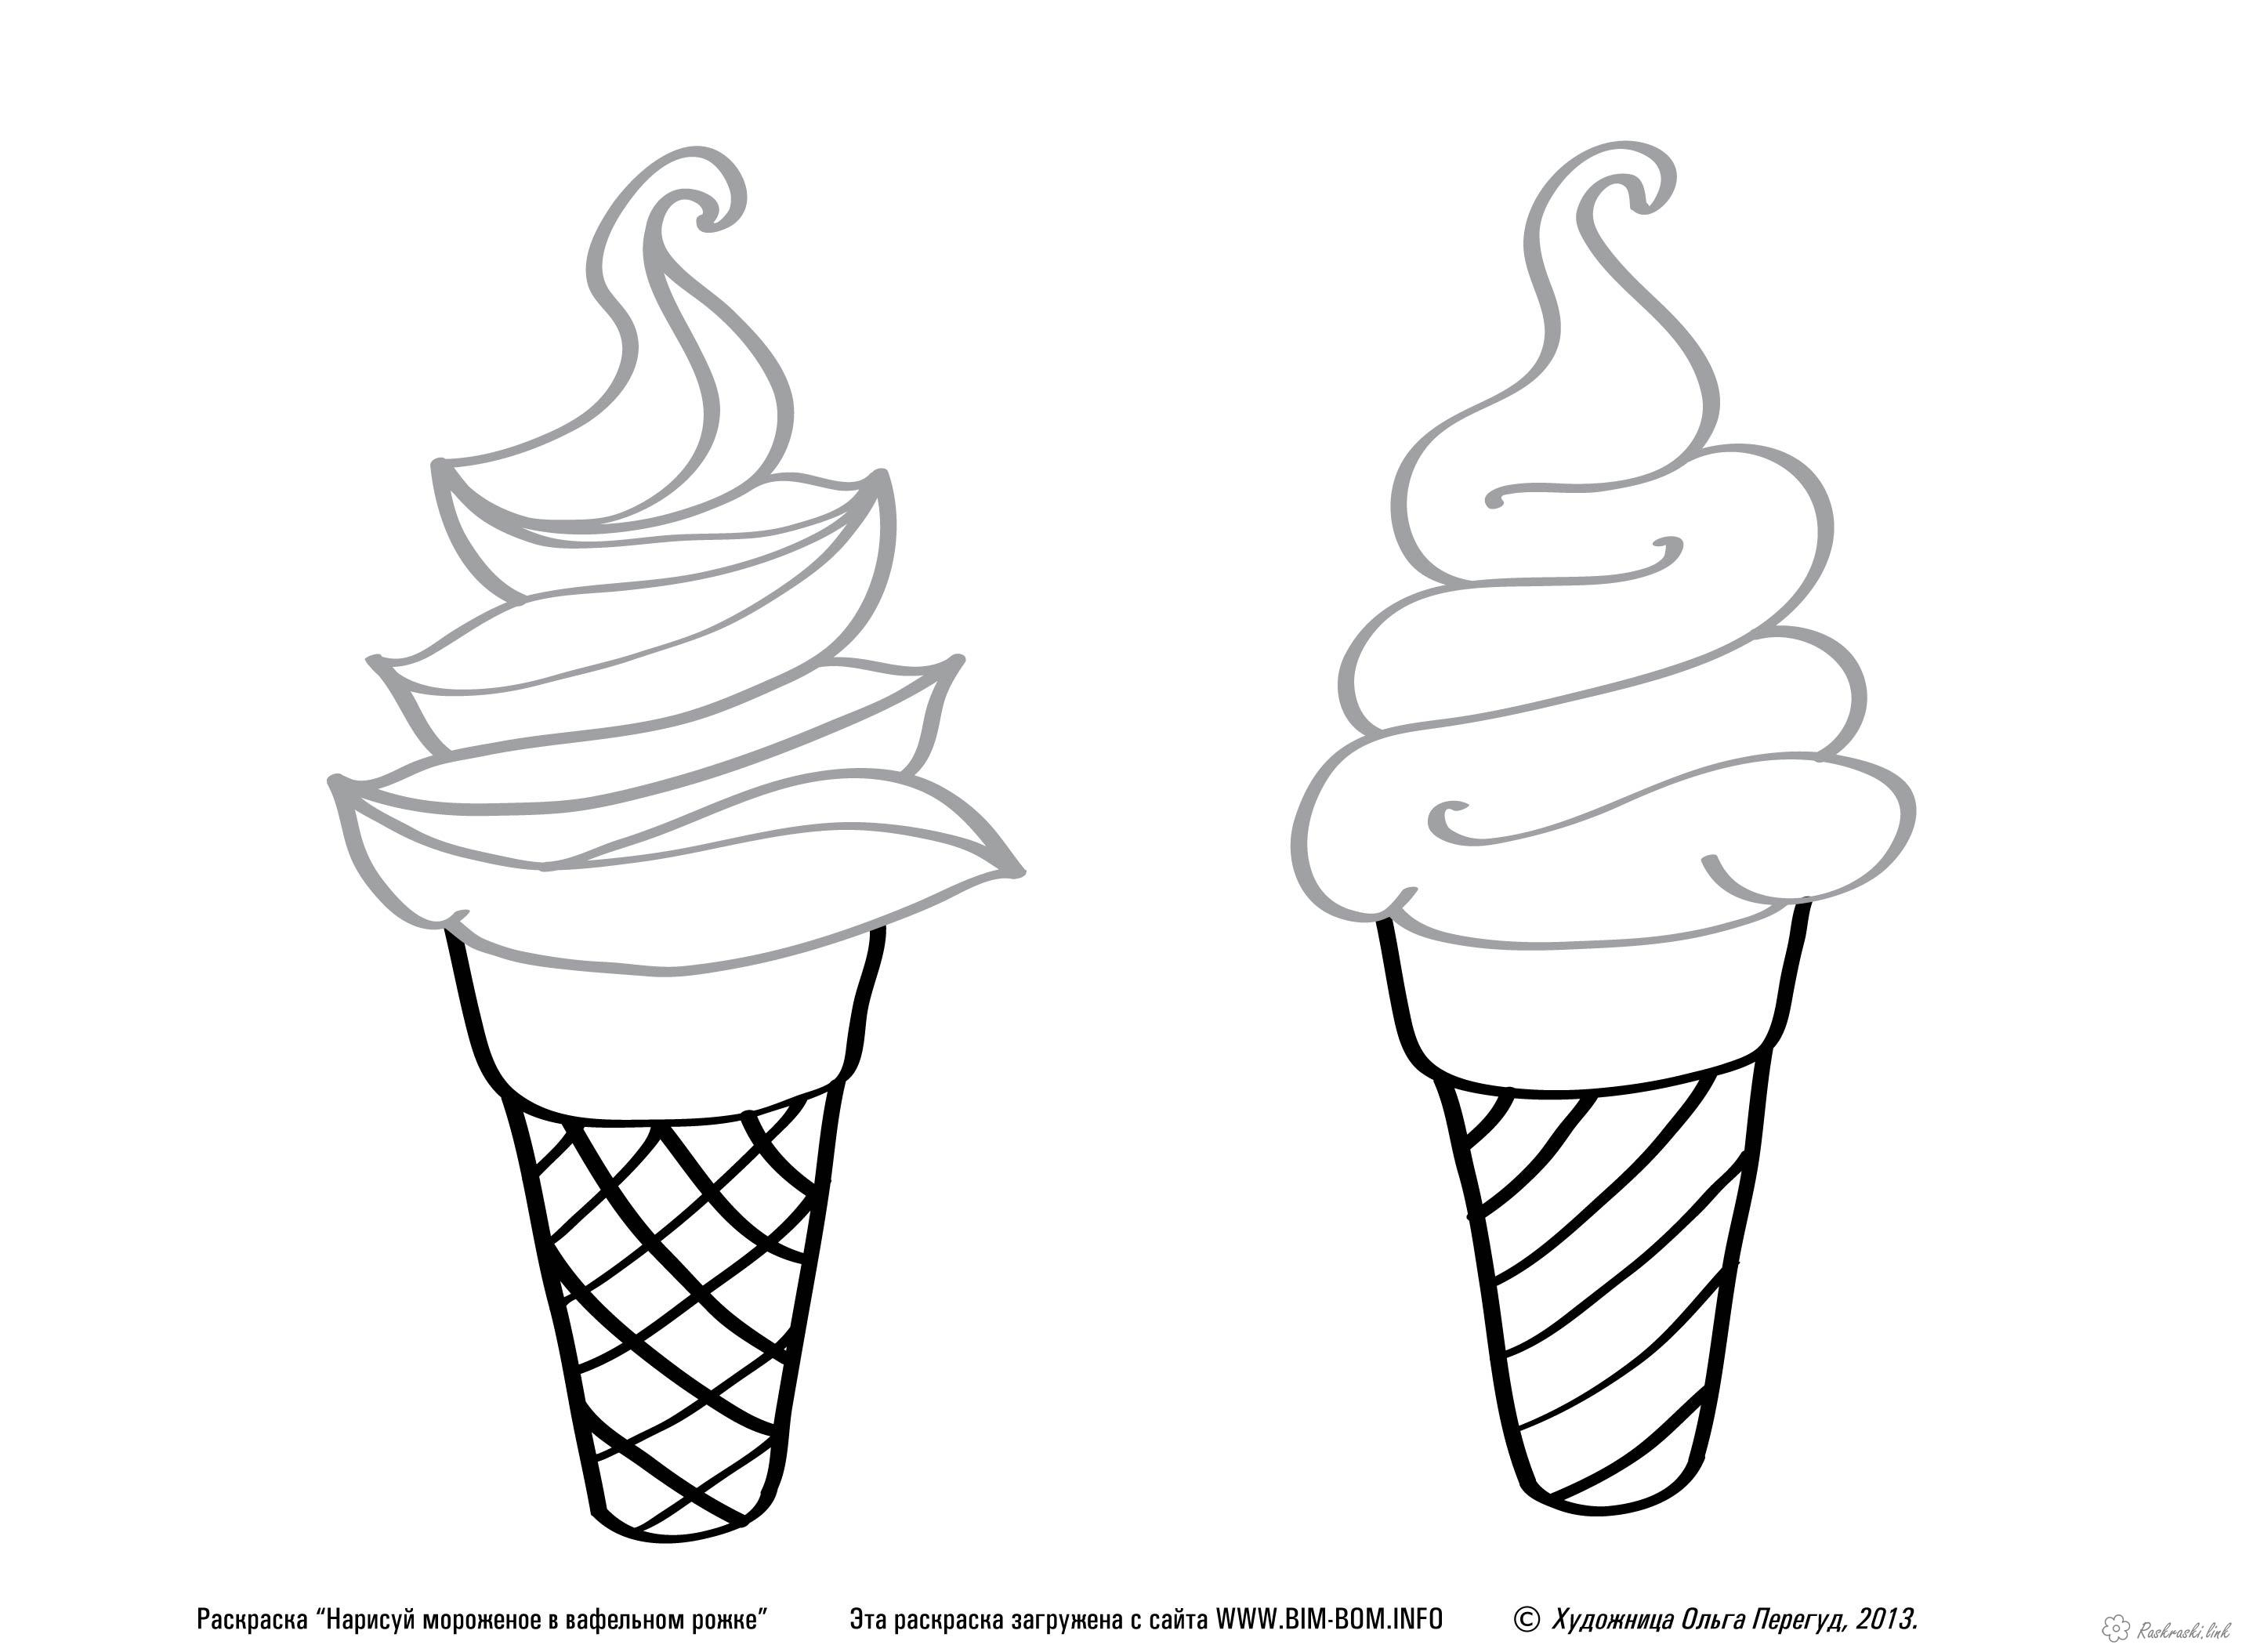 Coloring Ice-cream Two horns, tasty, vanilla, wafer cone, coloring pages